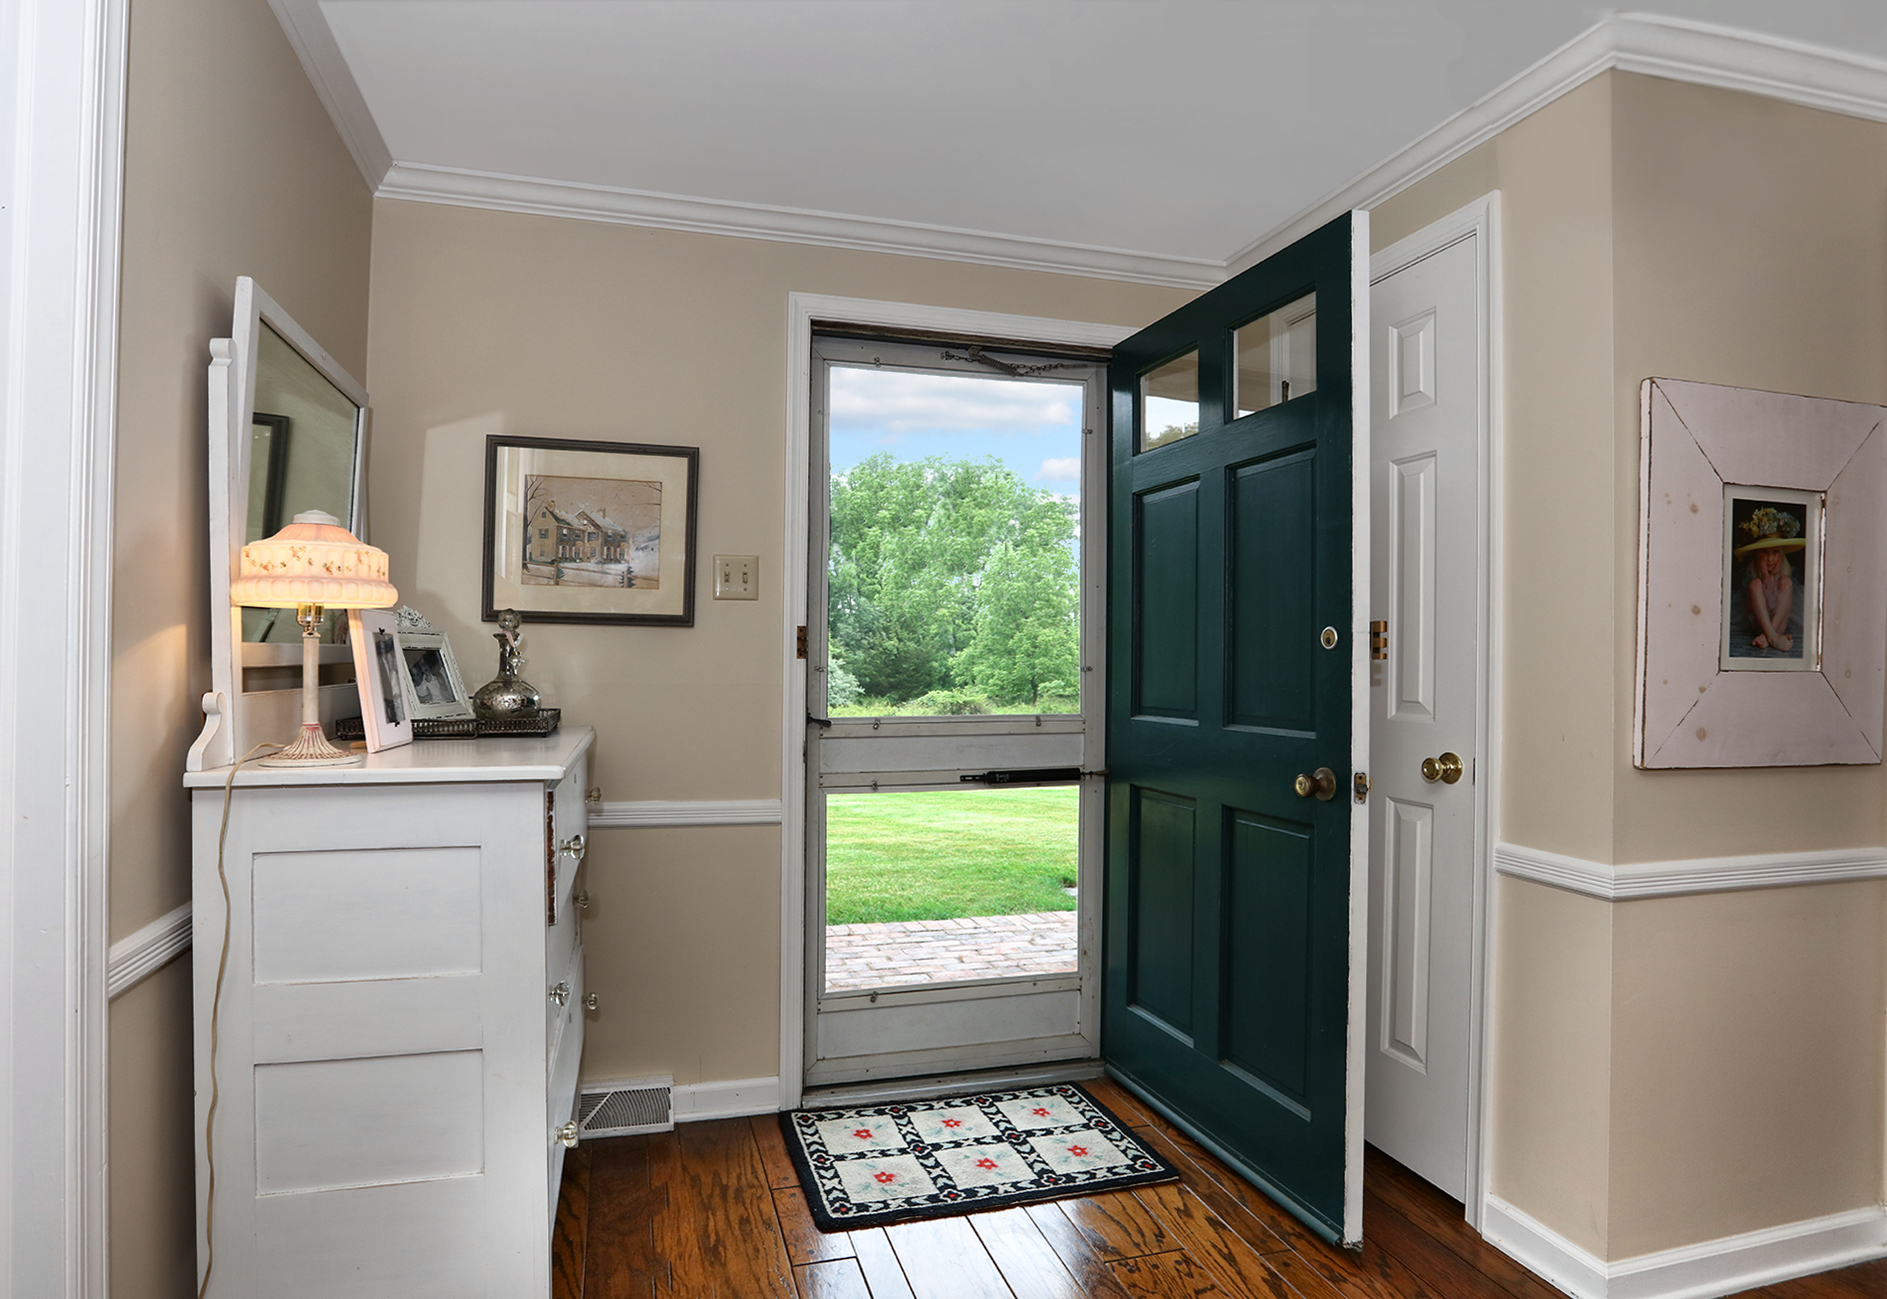 Additional photo for property listing at Easy Chic In Scenic Solebury - Solebury Township 5 Sugan Close Street New Hope, Pennsylvania 18938 United States